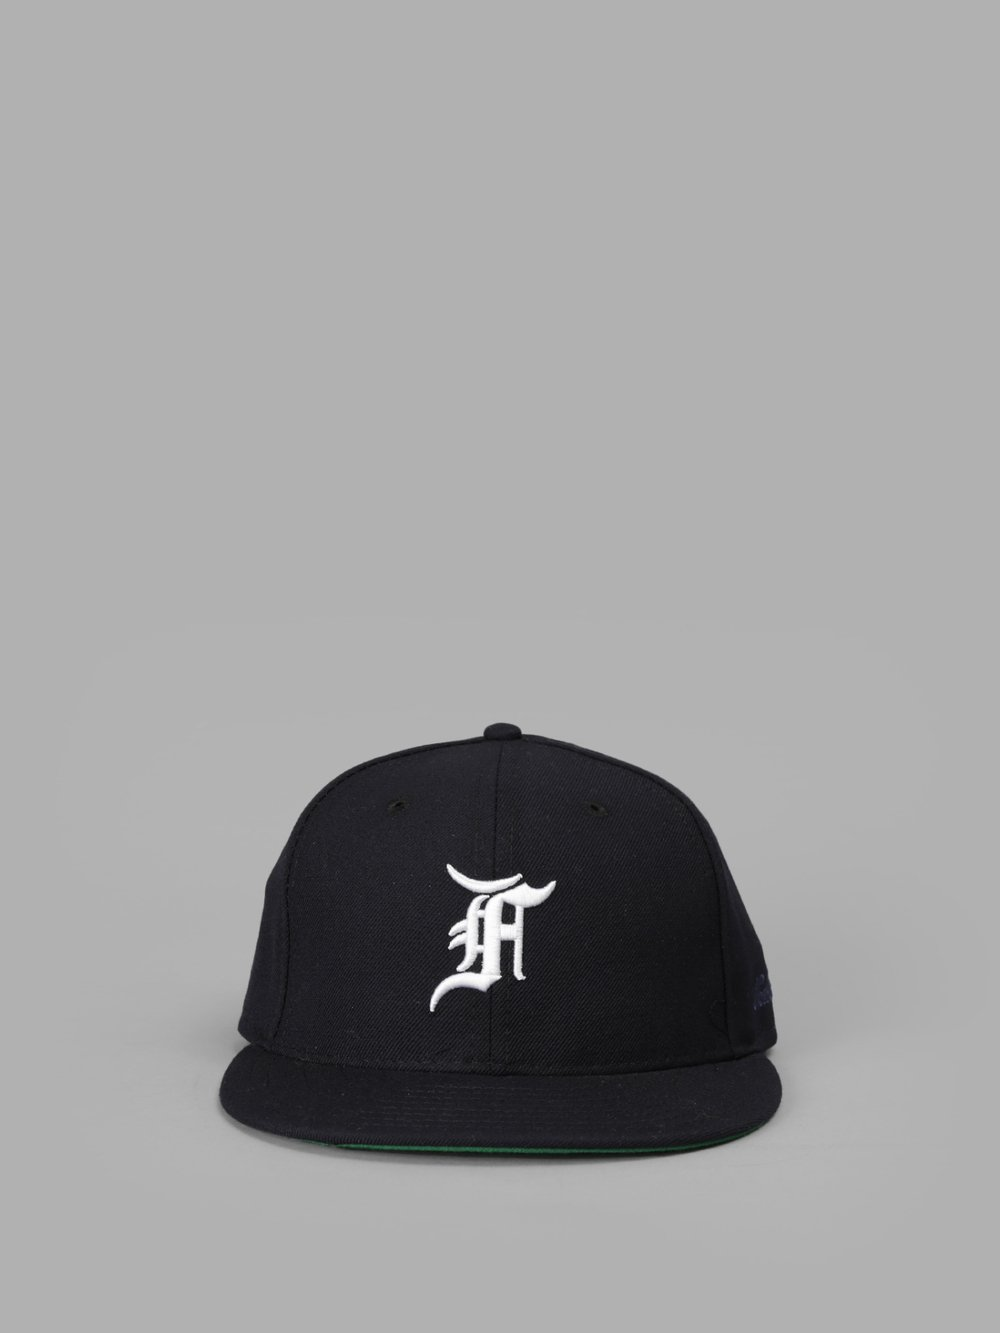 Fear of God - Hats - Antonioli.eu 4188428f77f